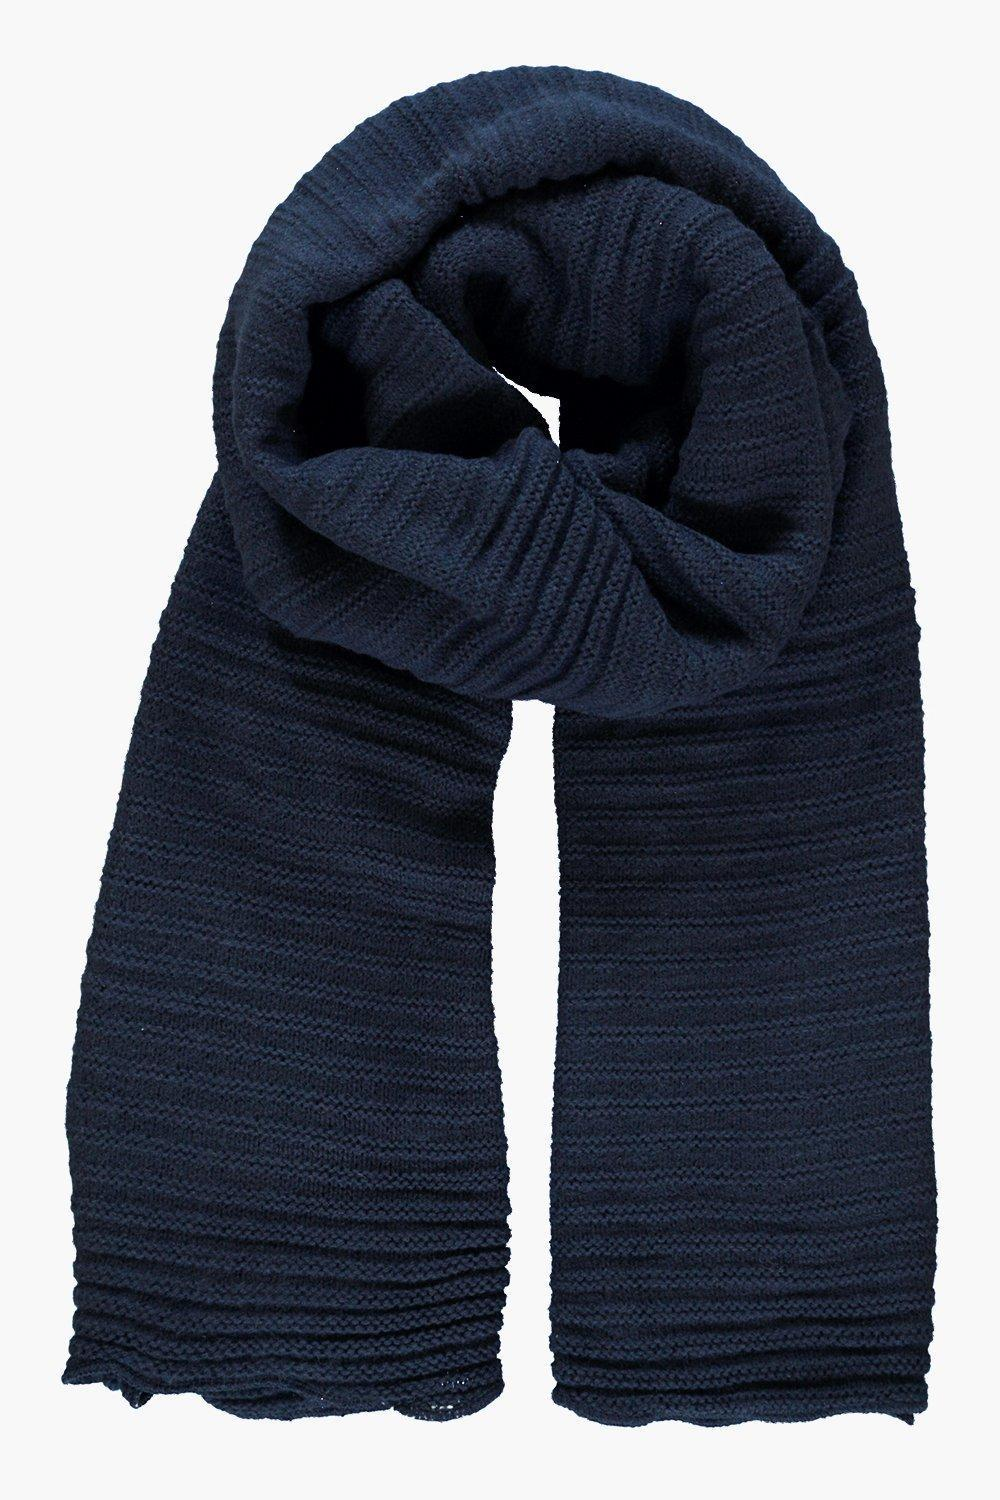 Super Chunky Rib Knit Scarf Indigo - predominant colour: gold; occasions: casual; type of pattern: standard; style: regular; size: standard; material: fabric; pattern: knit; season: a/w 2016; wardrobe: highlight